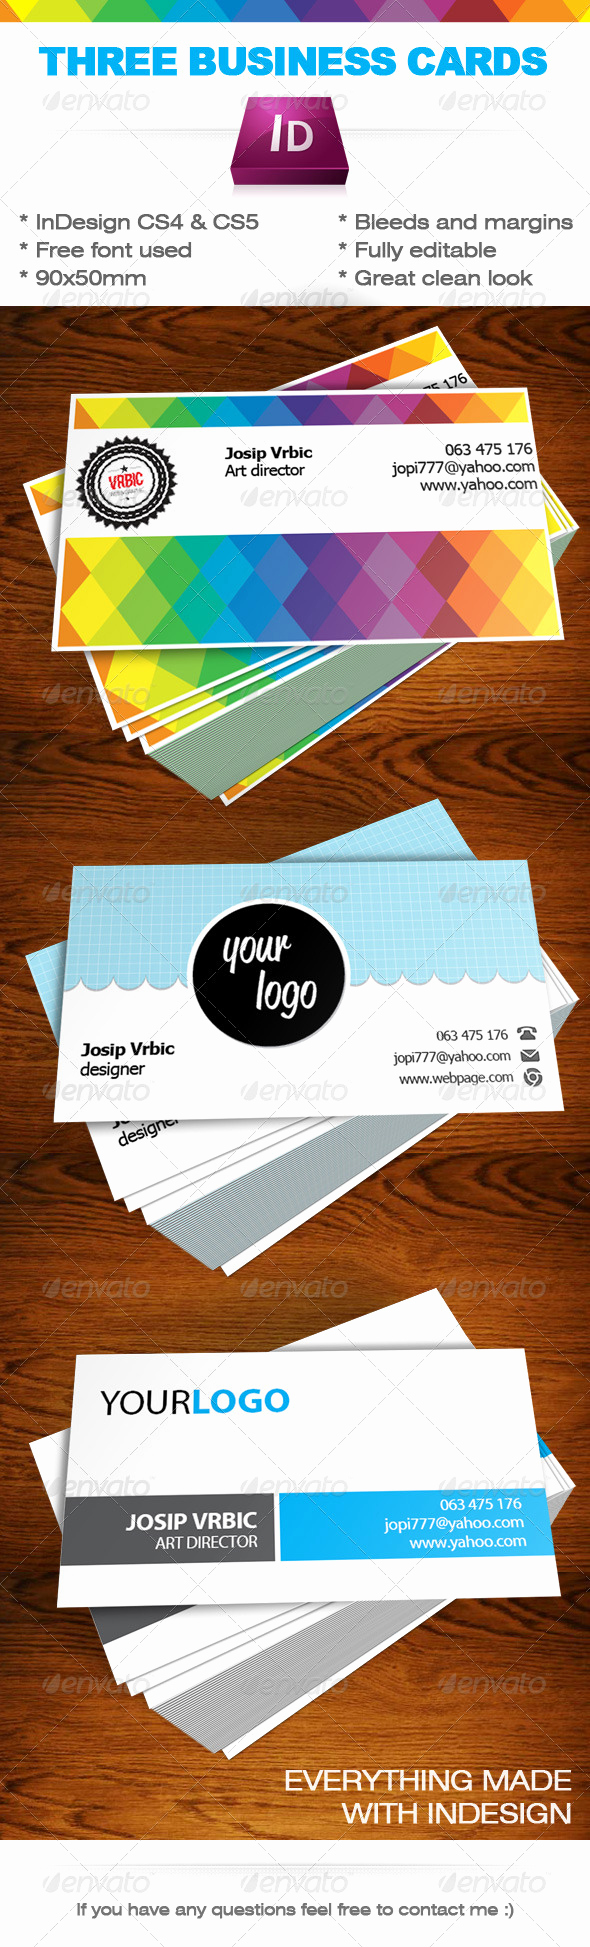 Indesign Business Cards Templates Inspirational Business Cards Indesign Templates